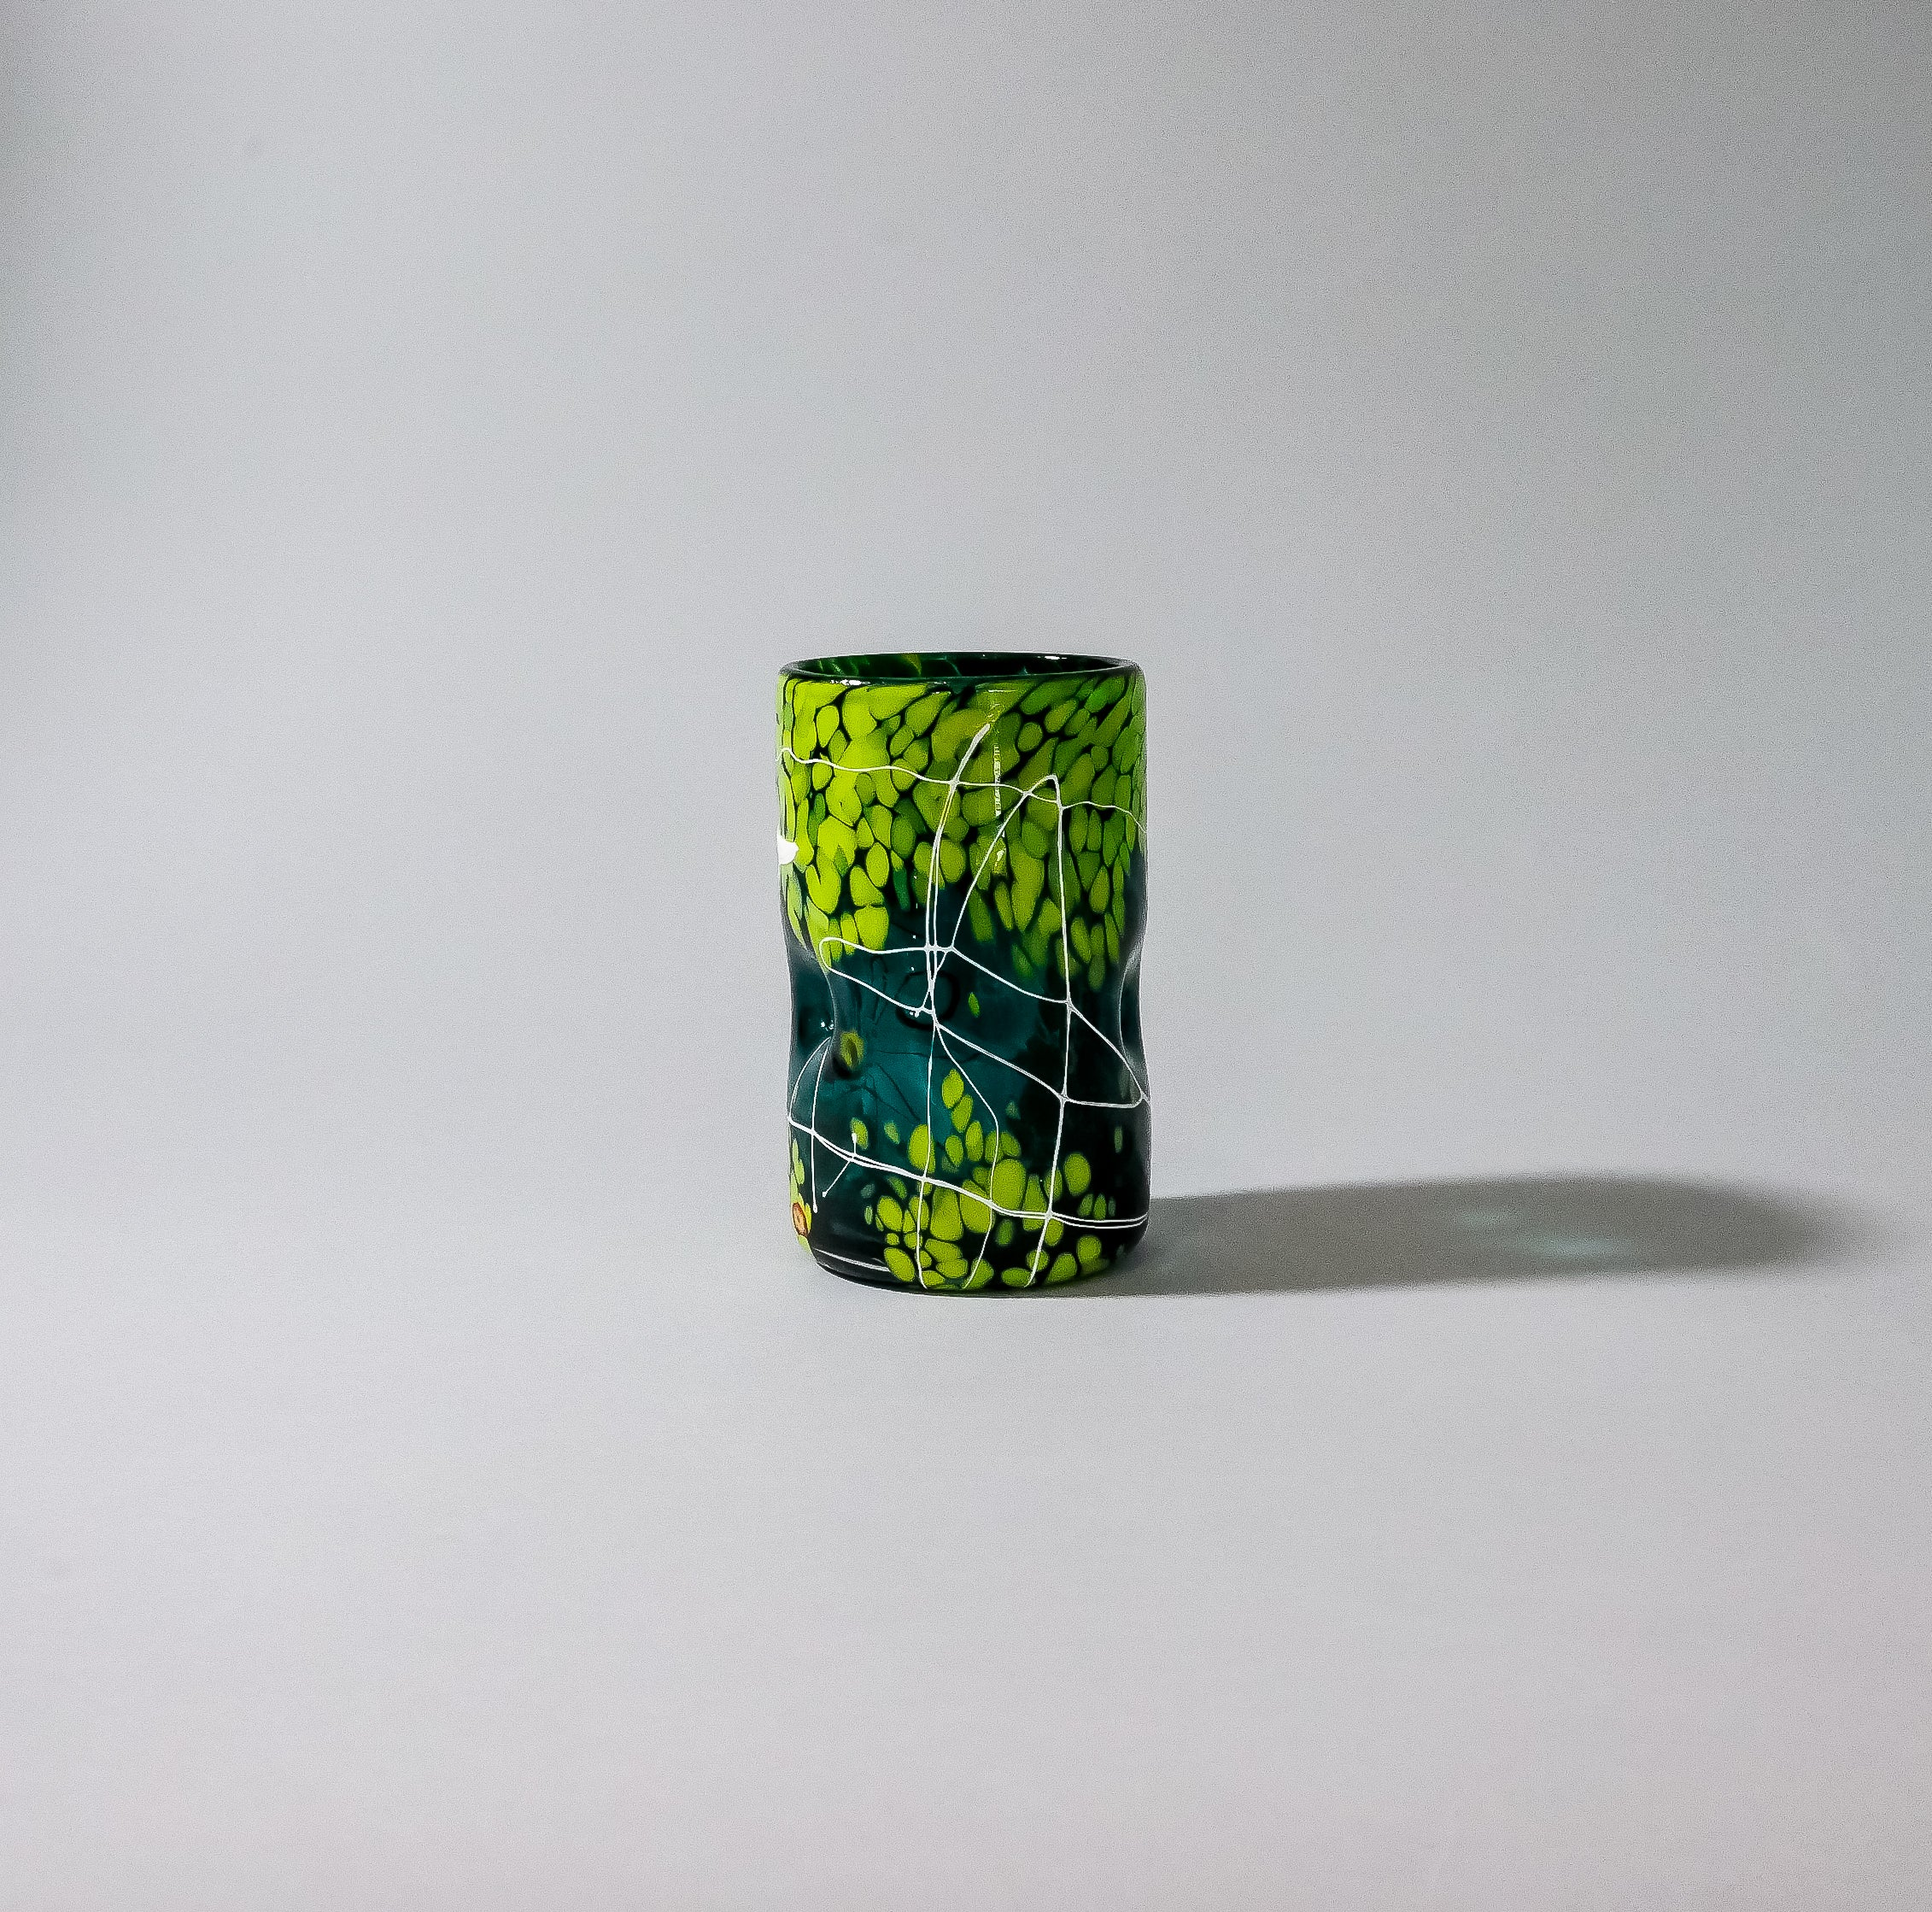 Special design Tumbler Cup: Blue and Yellow